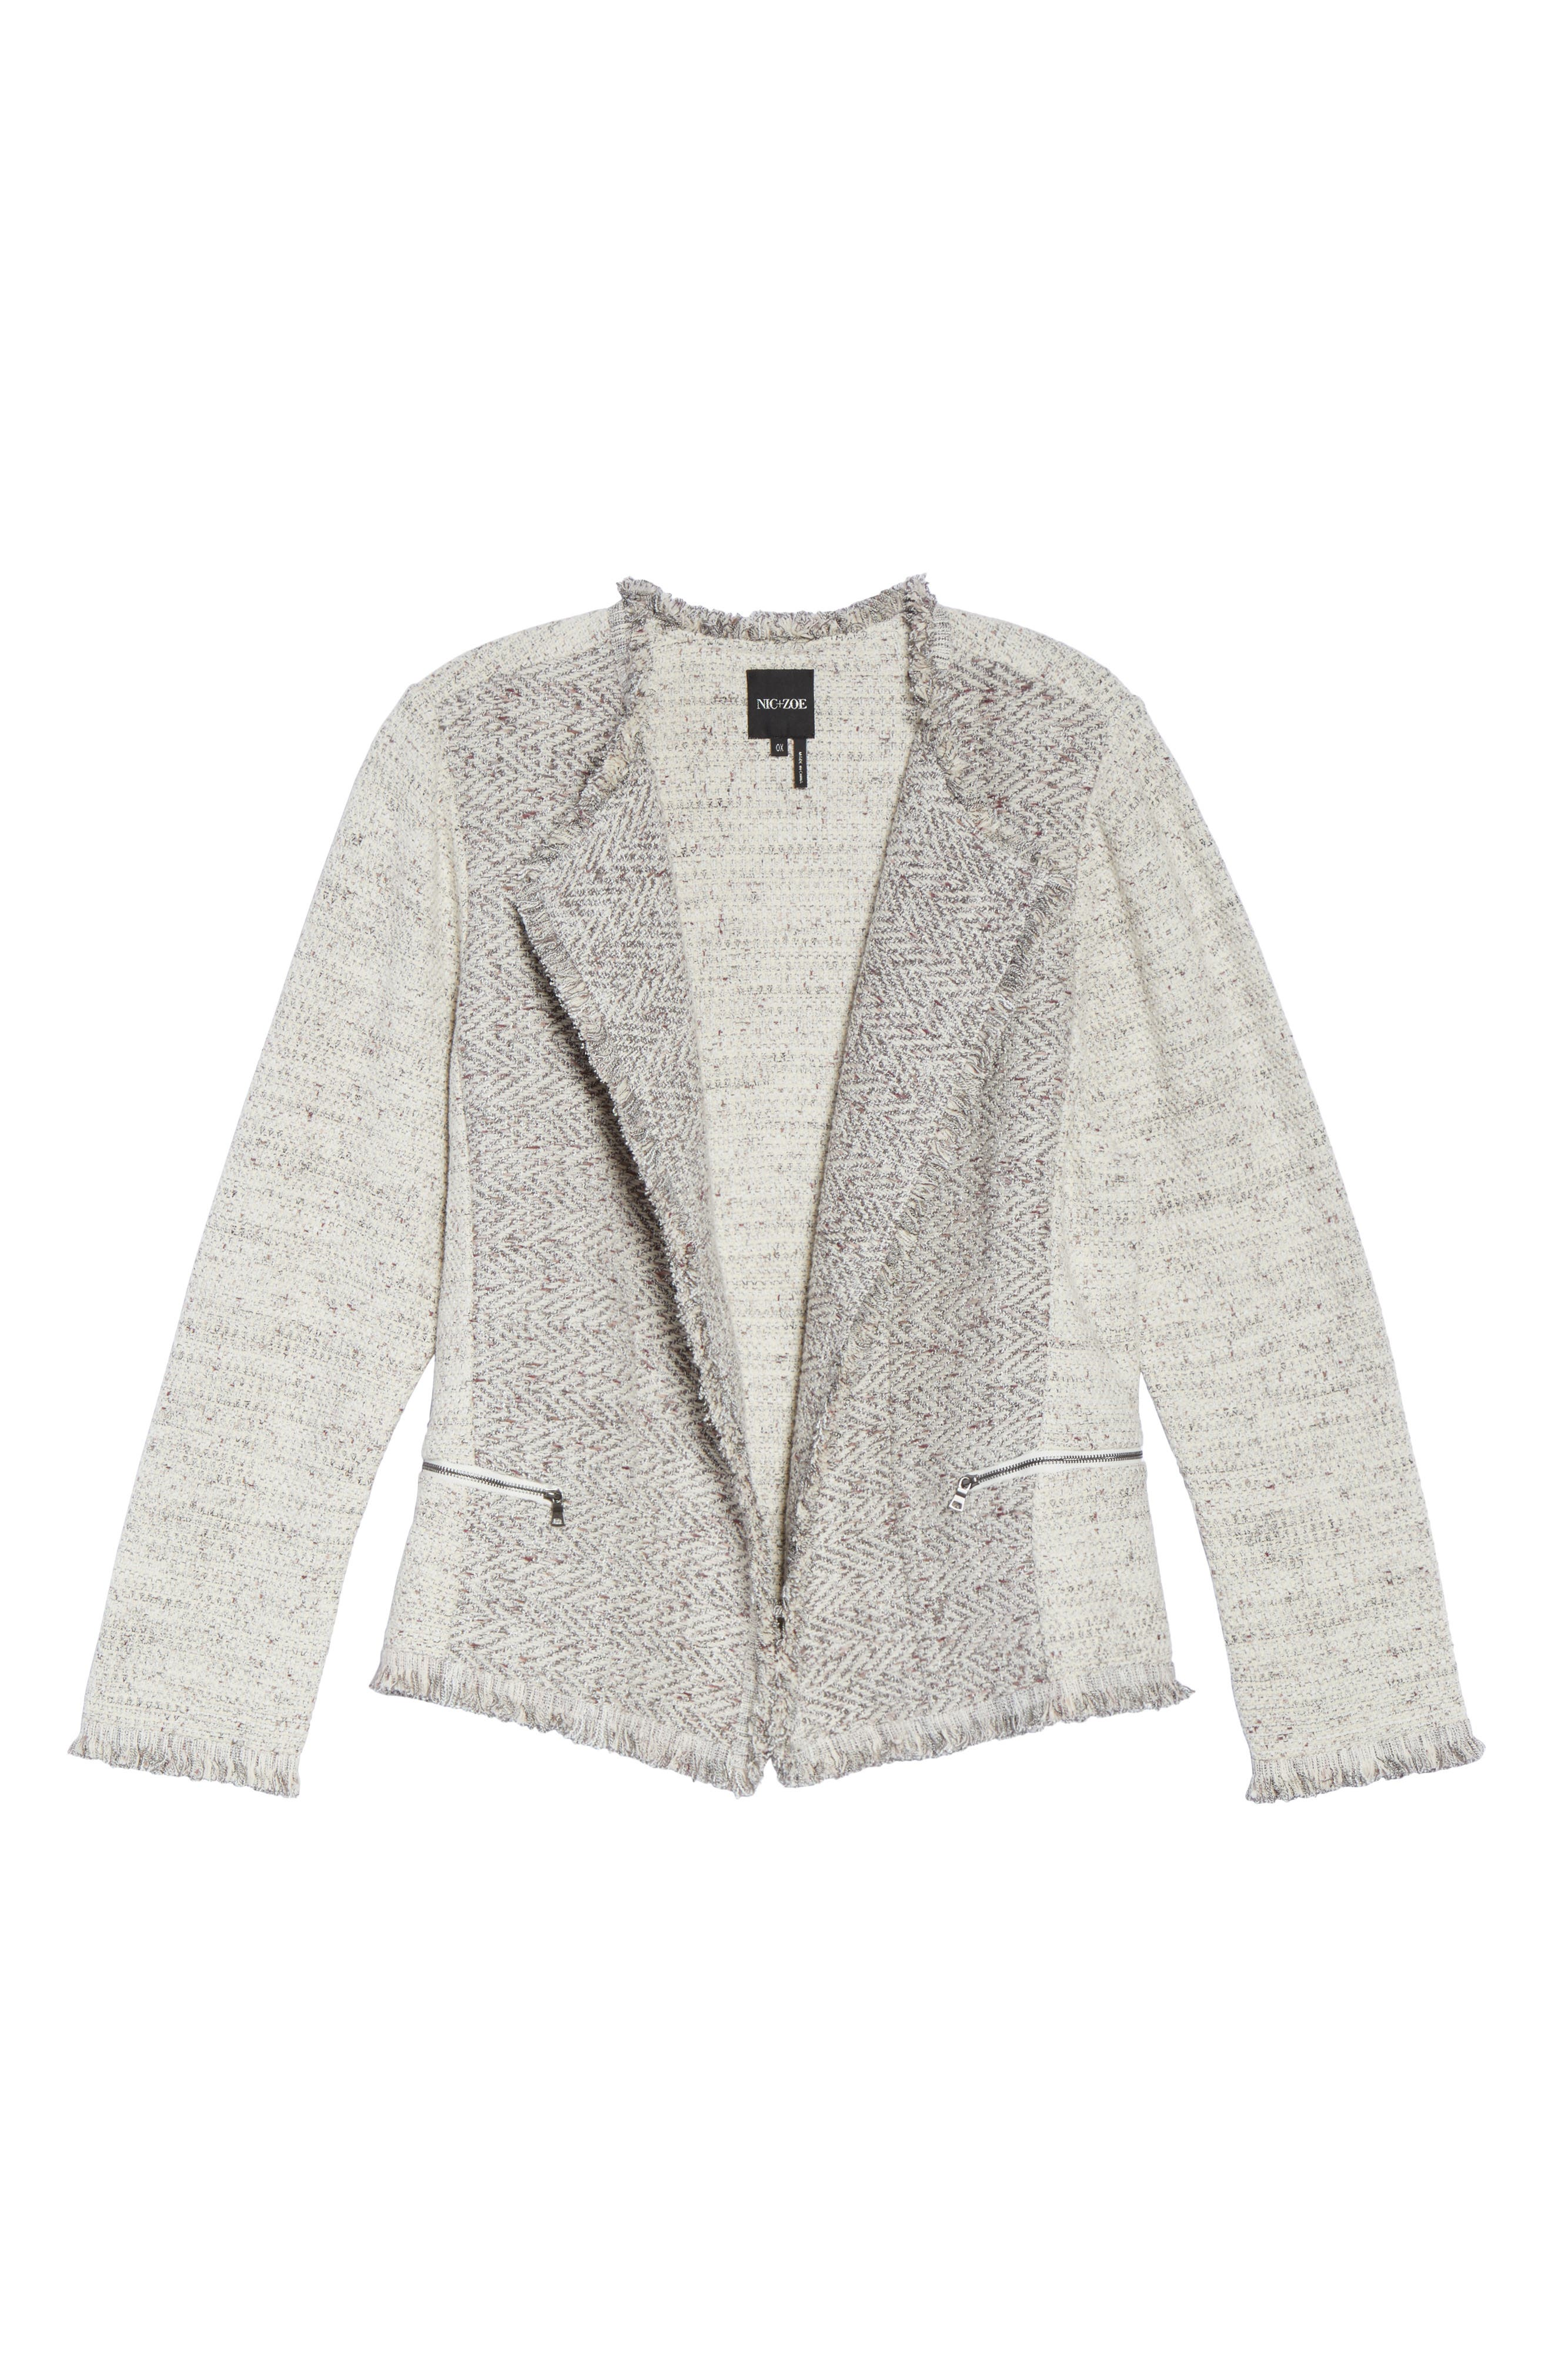 Chilled Tweed Jacket,                             Alternate thumbnail 6, color,                             Grey Multi